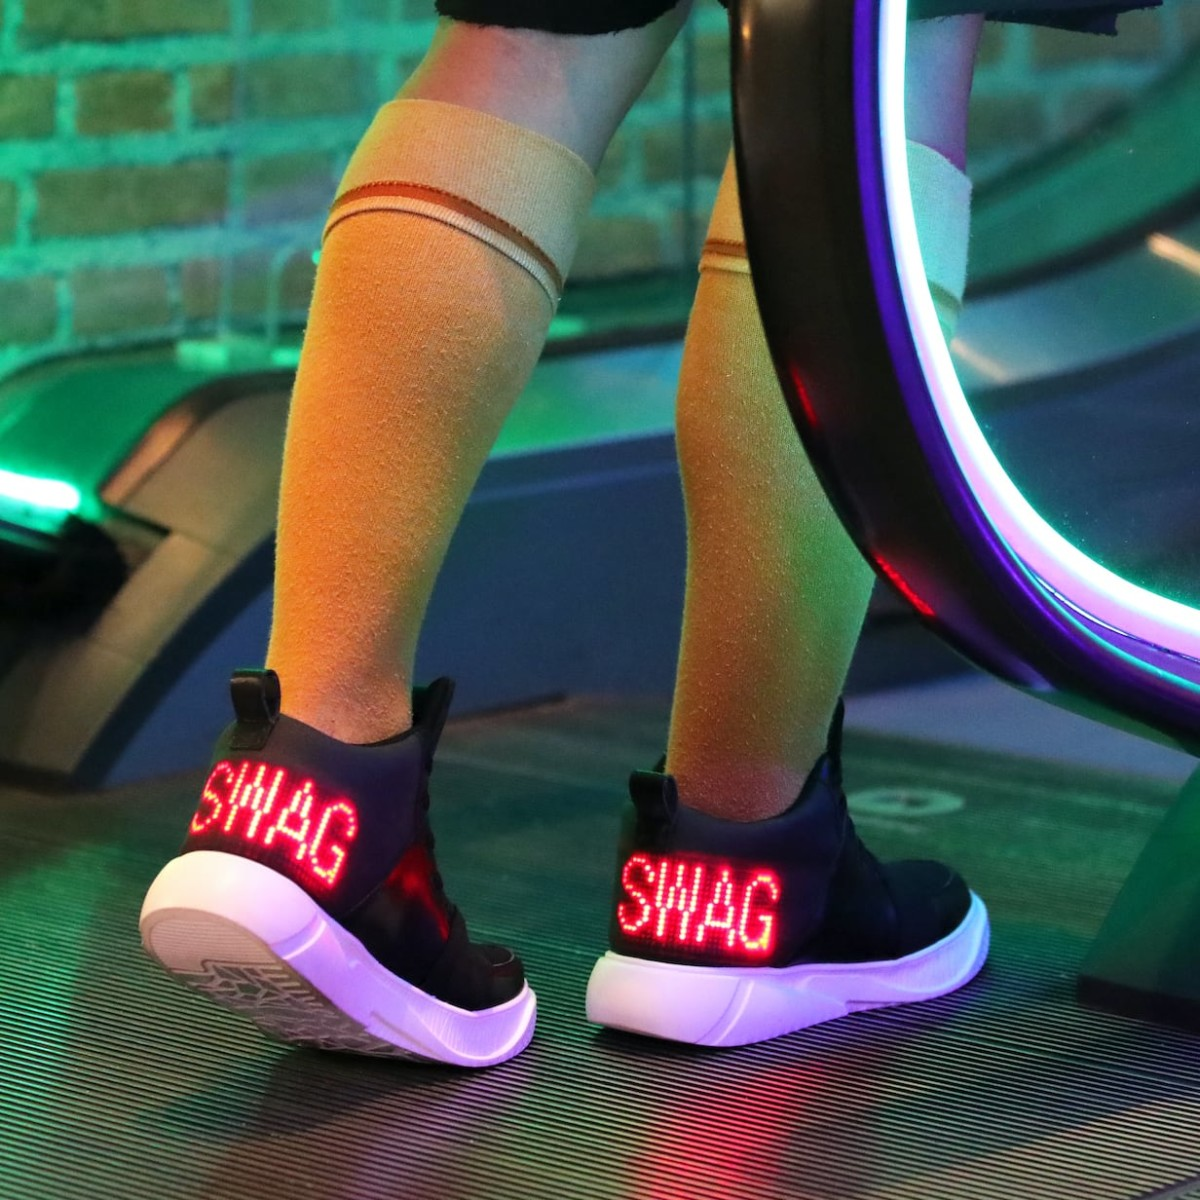 E-Sneakers by Evolux Customizable LED Shoes display any message of your choosing